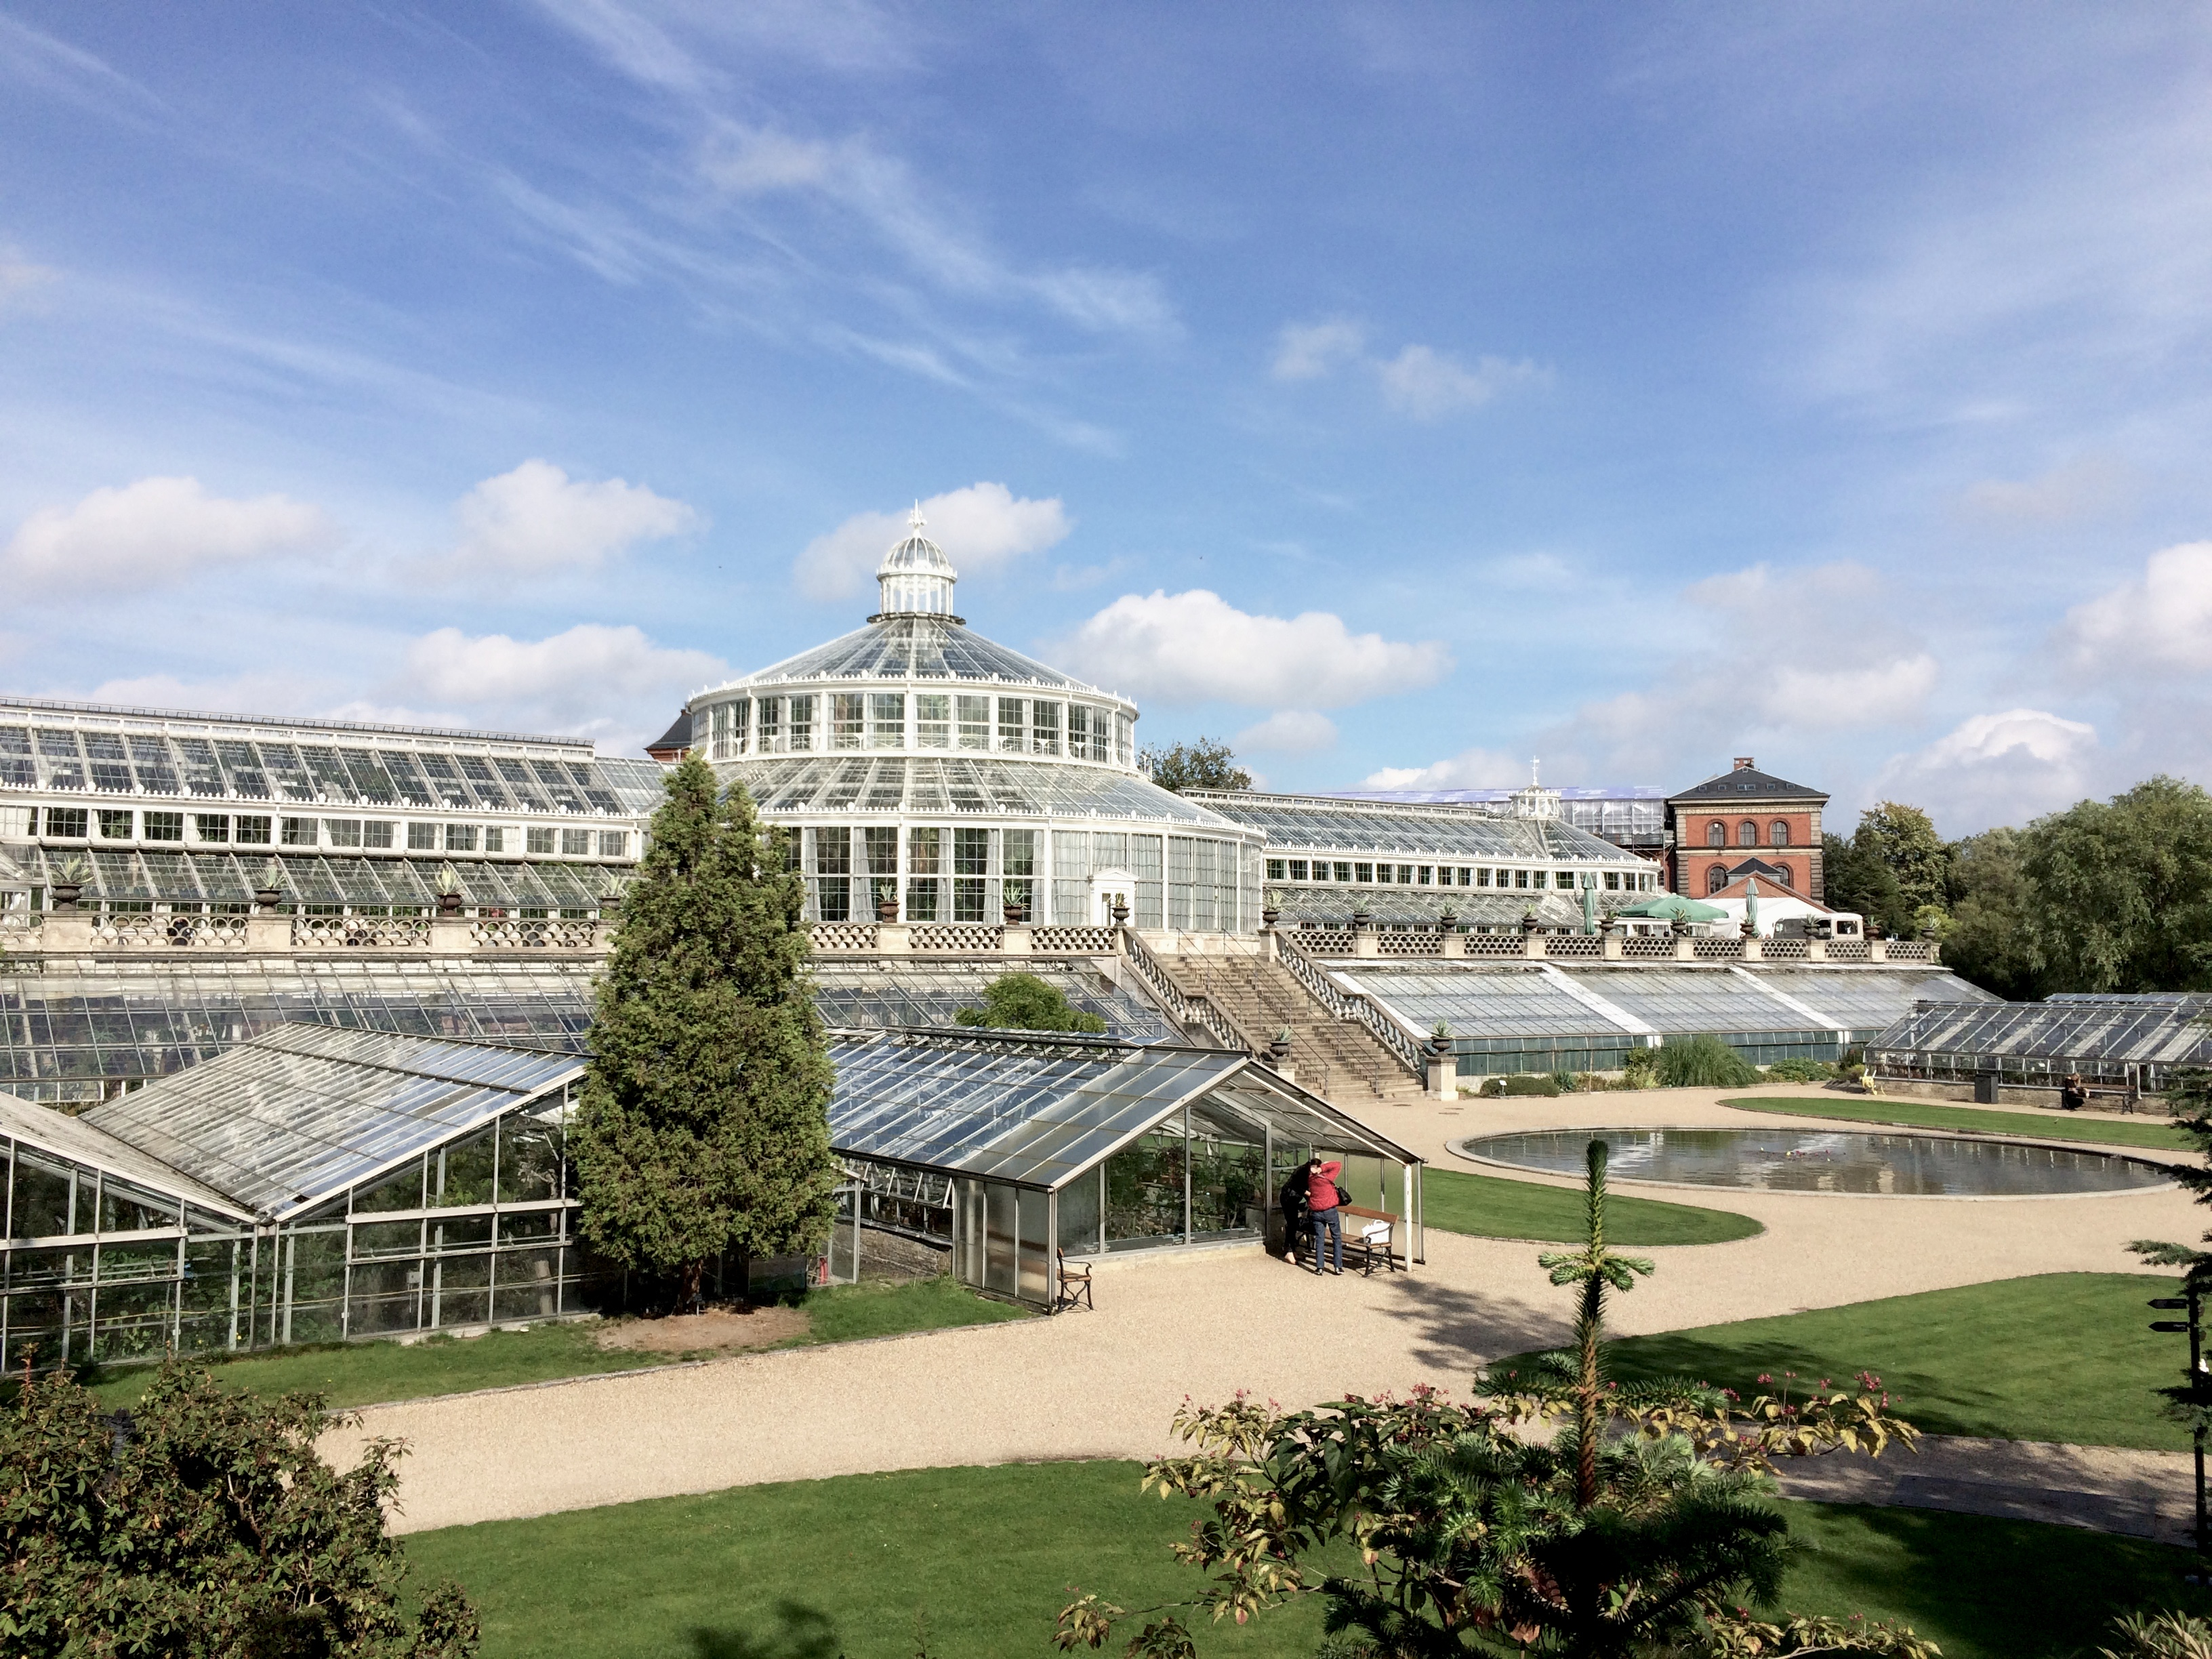 Orto Botanico | Come to Copenhagen with Nonsolofood